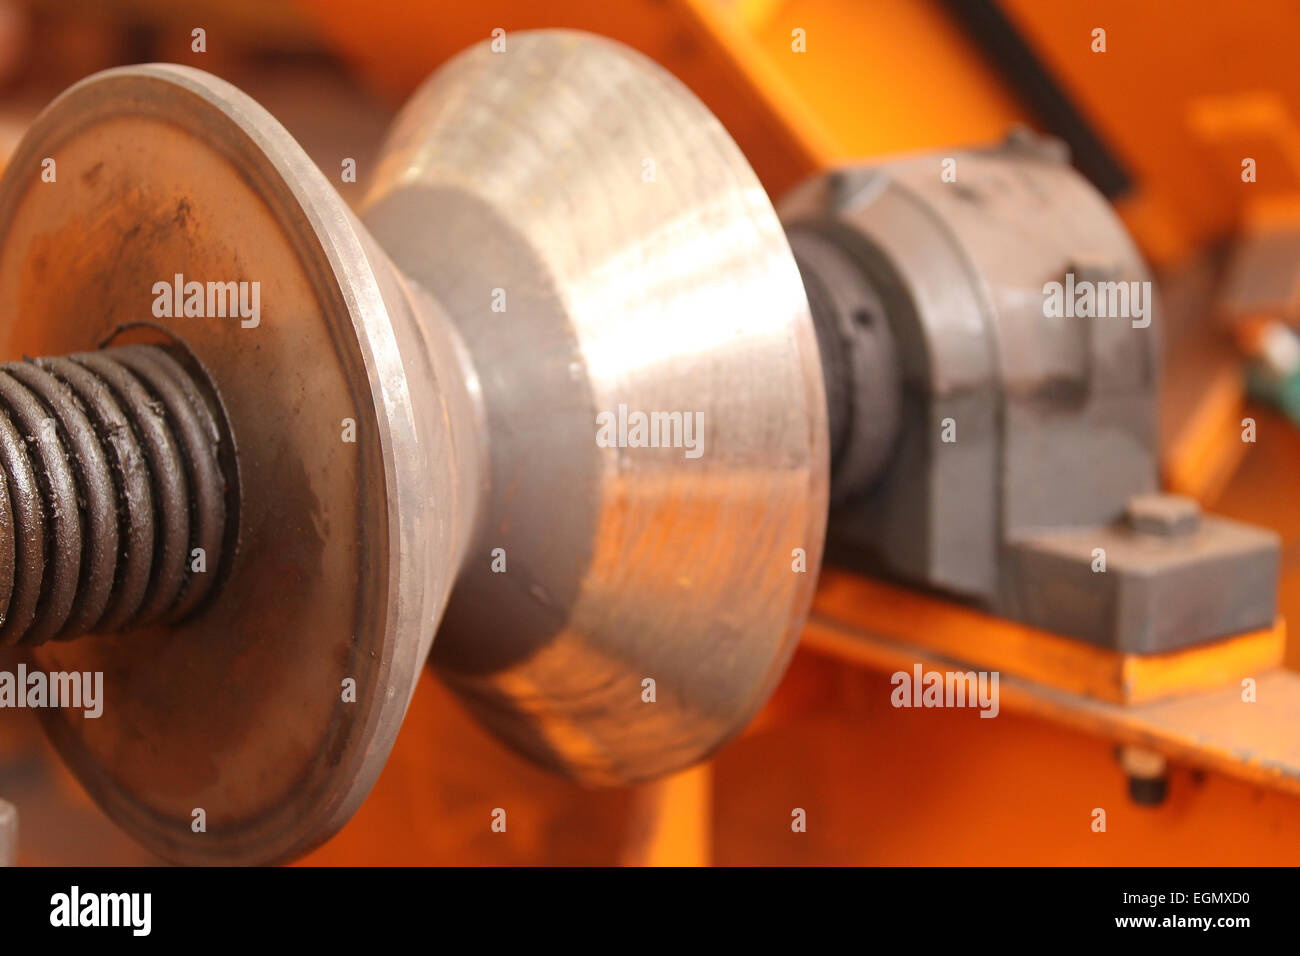 conic section steel rollers to move the workpiece - Stock Image